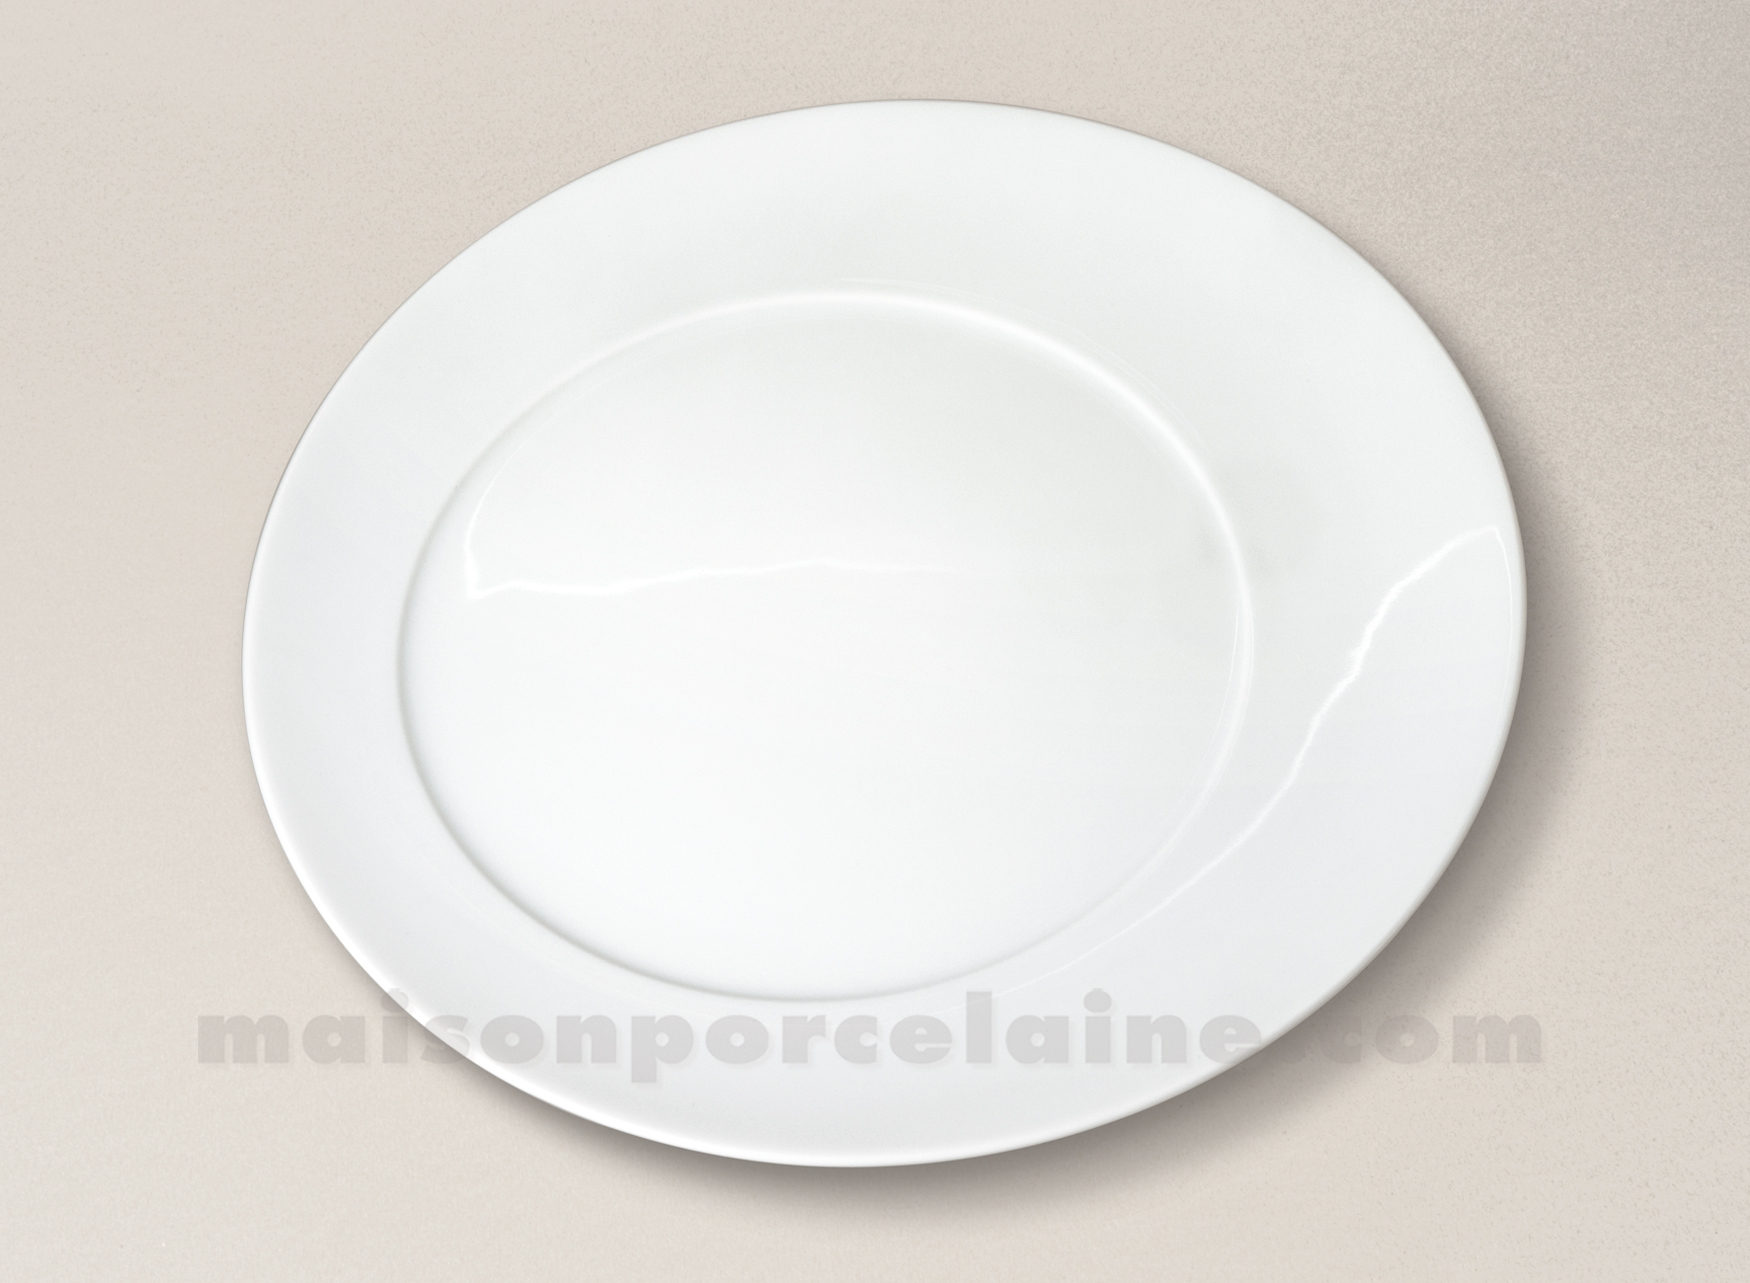 assiette plate porcelaine blanche kosmos d28 maison de la porcelaine. Black Bedroom Furniture Sets. Home Design Ideas